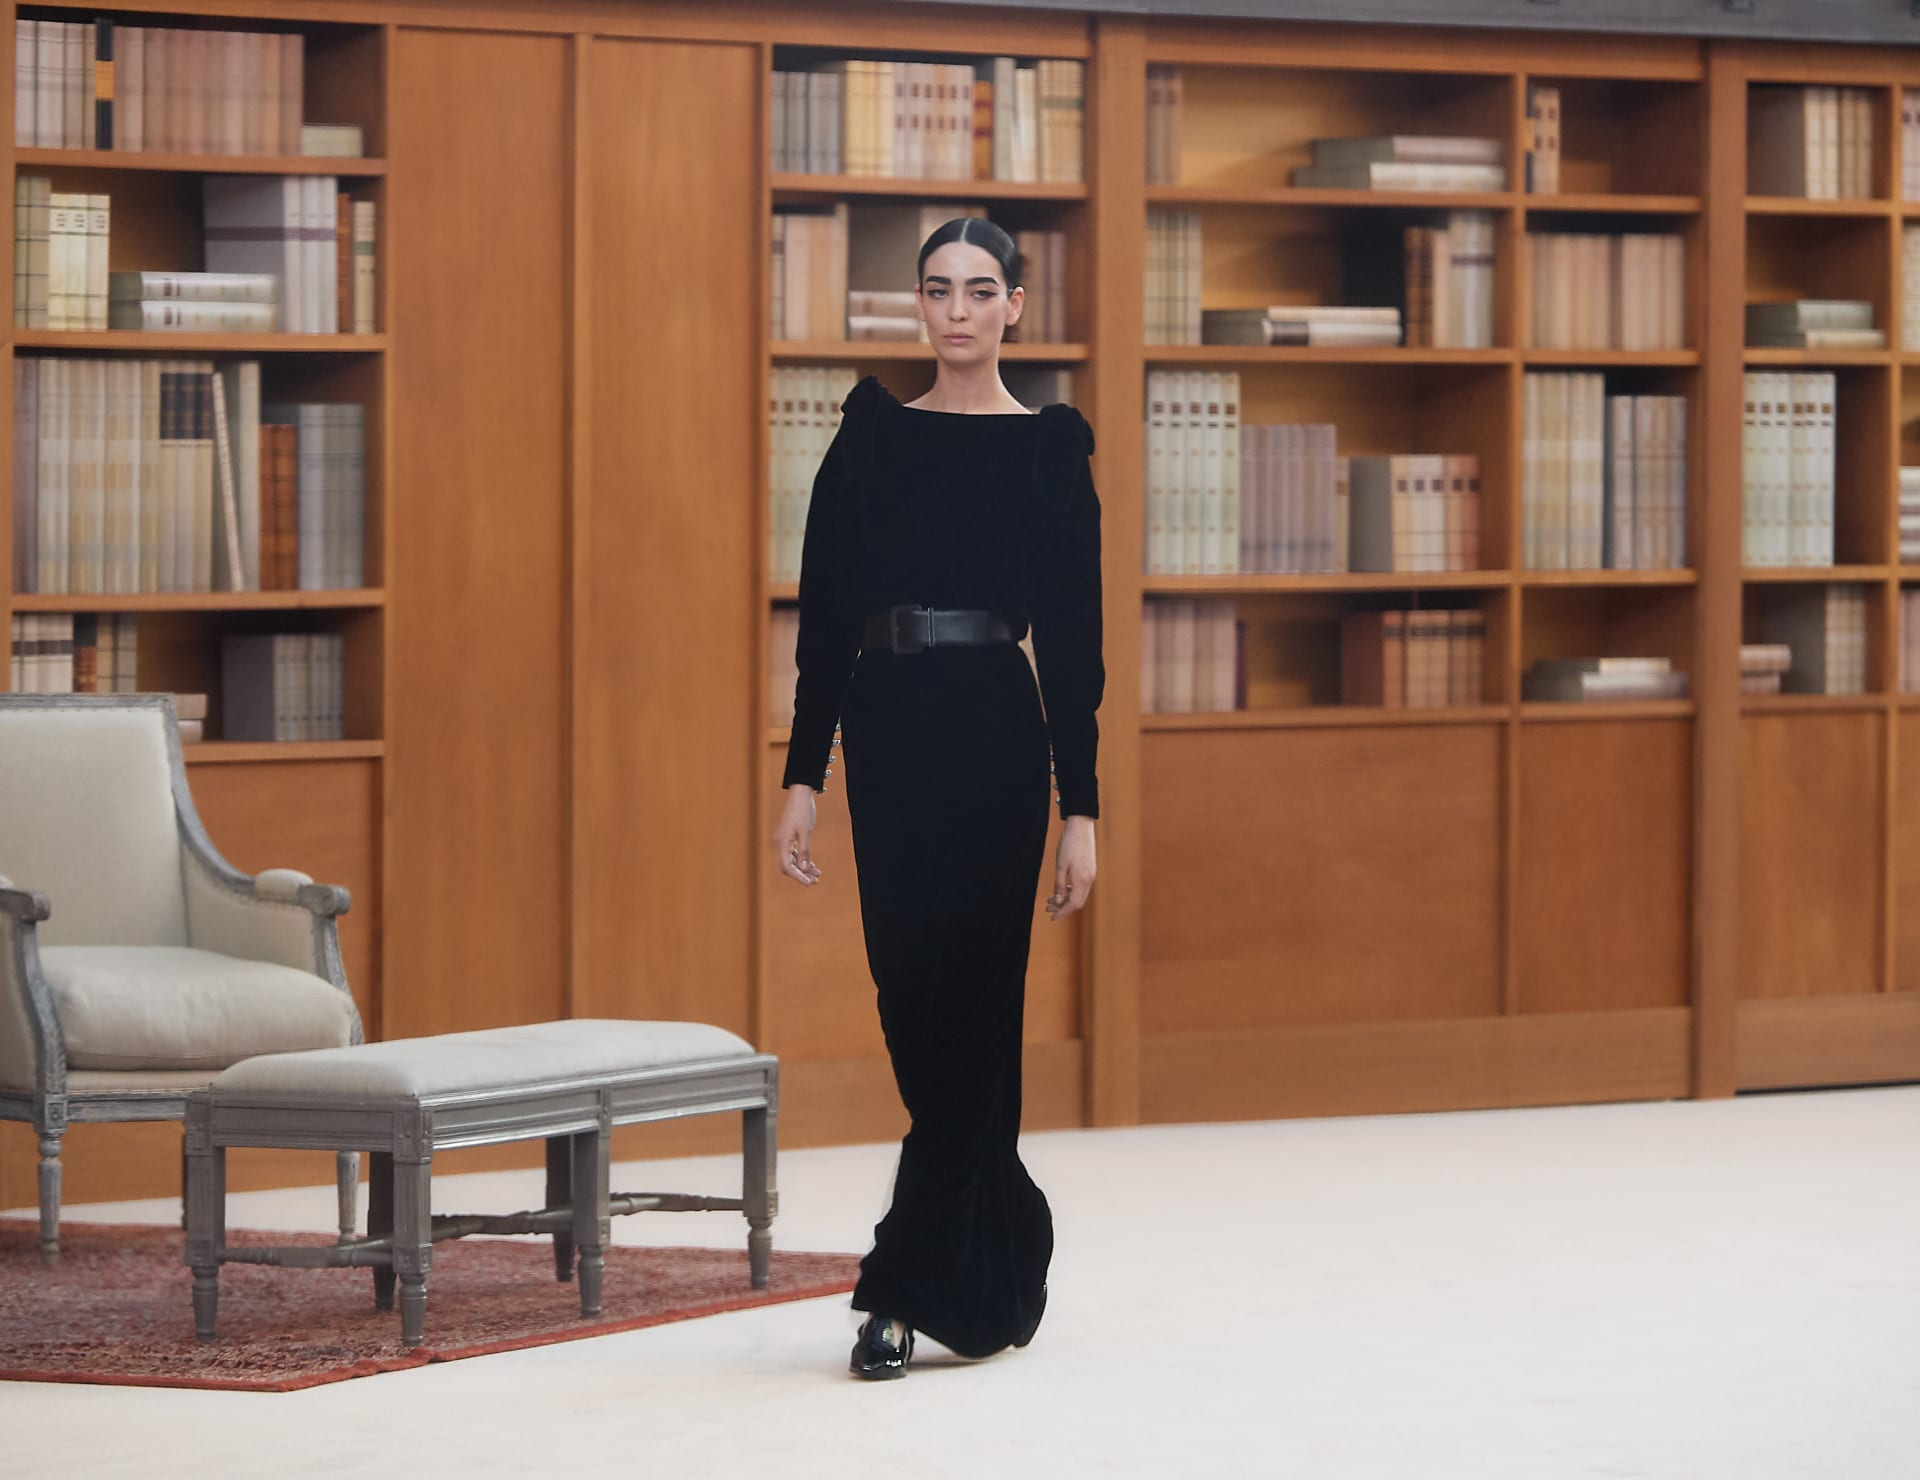 View 1 - Look 65 - Fall-Winter 2019/20 Haute-Couture - see full sized version